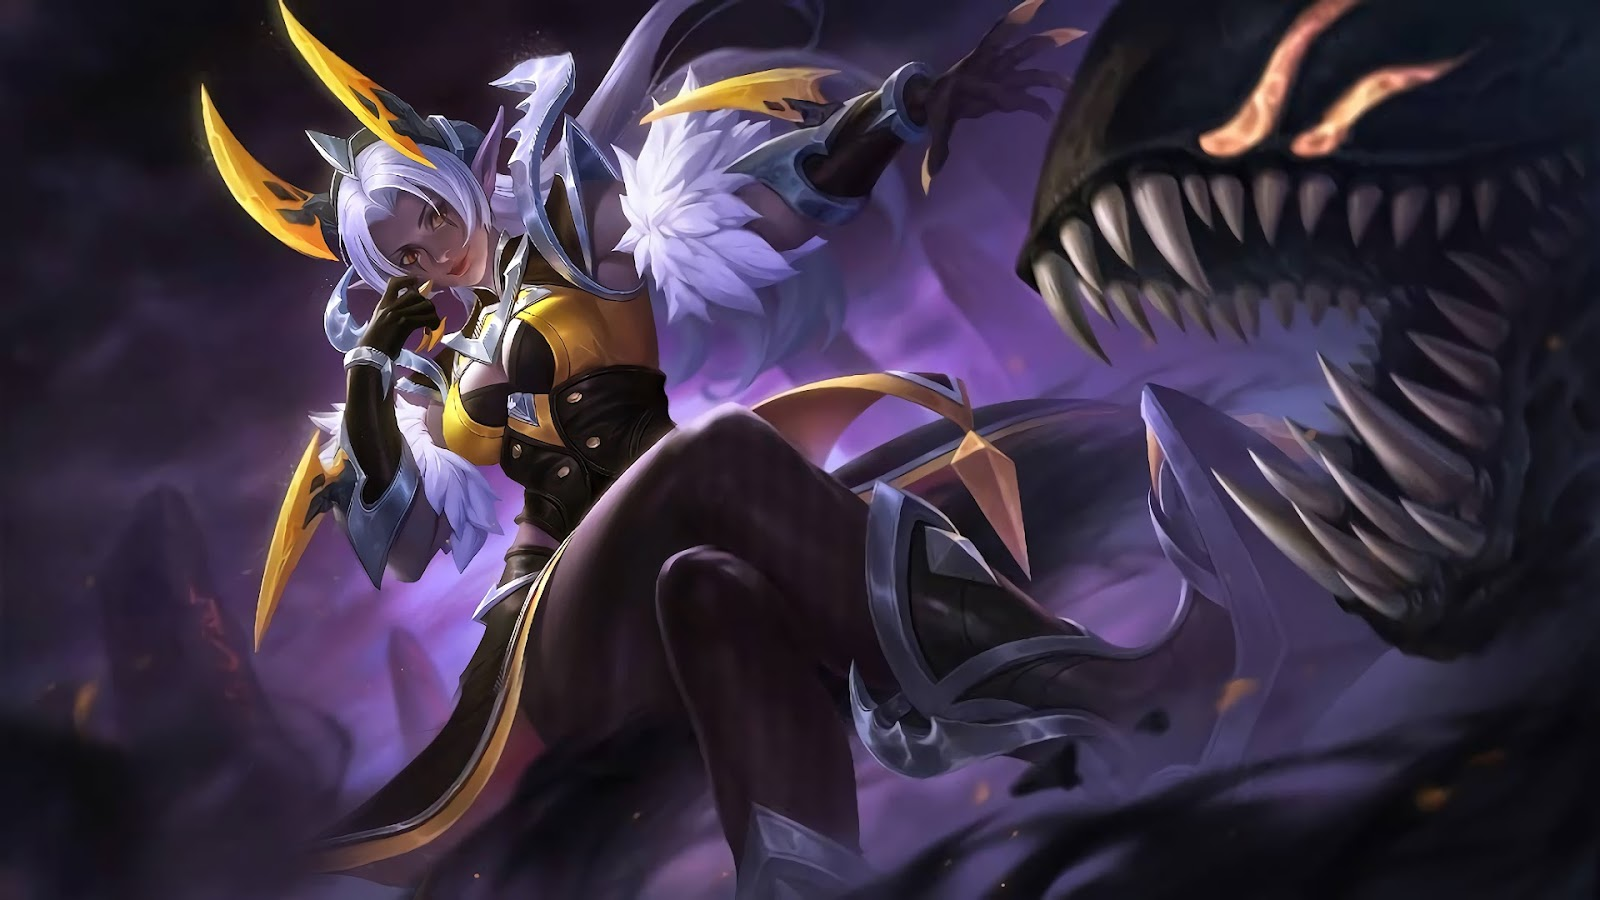 Wallpaper Selena Wasp Queen Skin Mobile Legends HD for PC